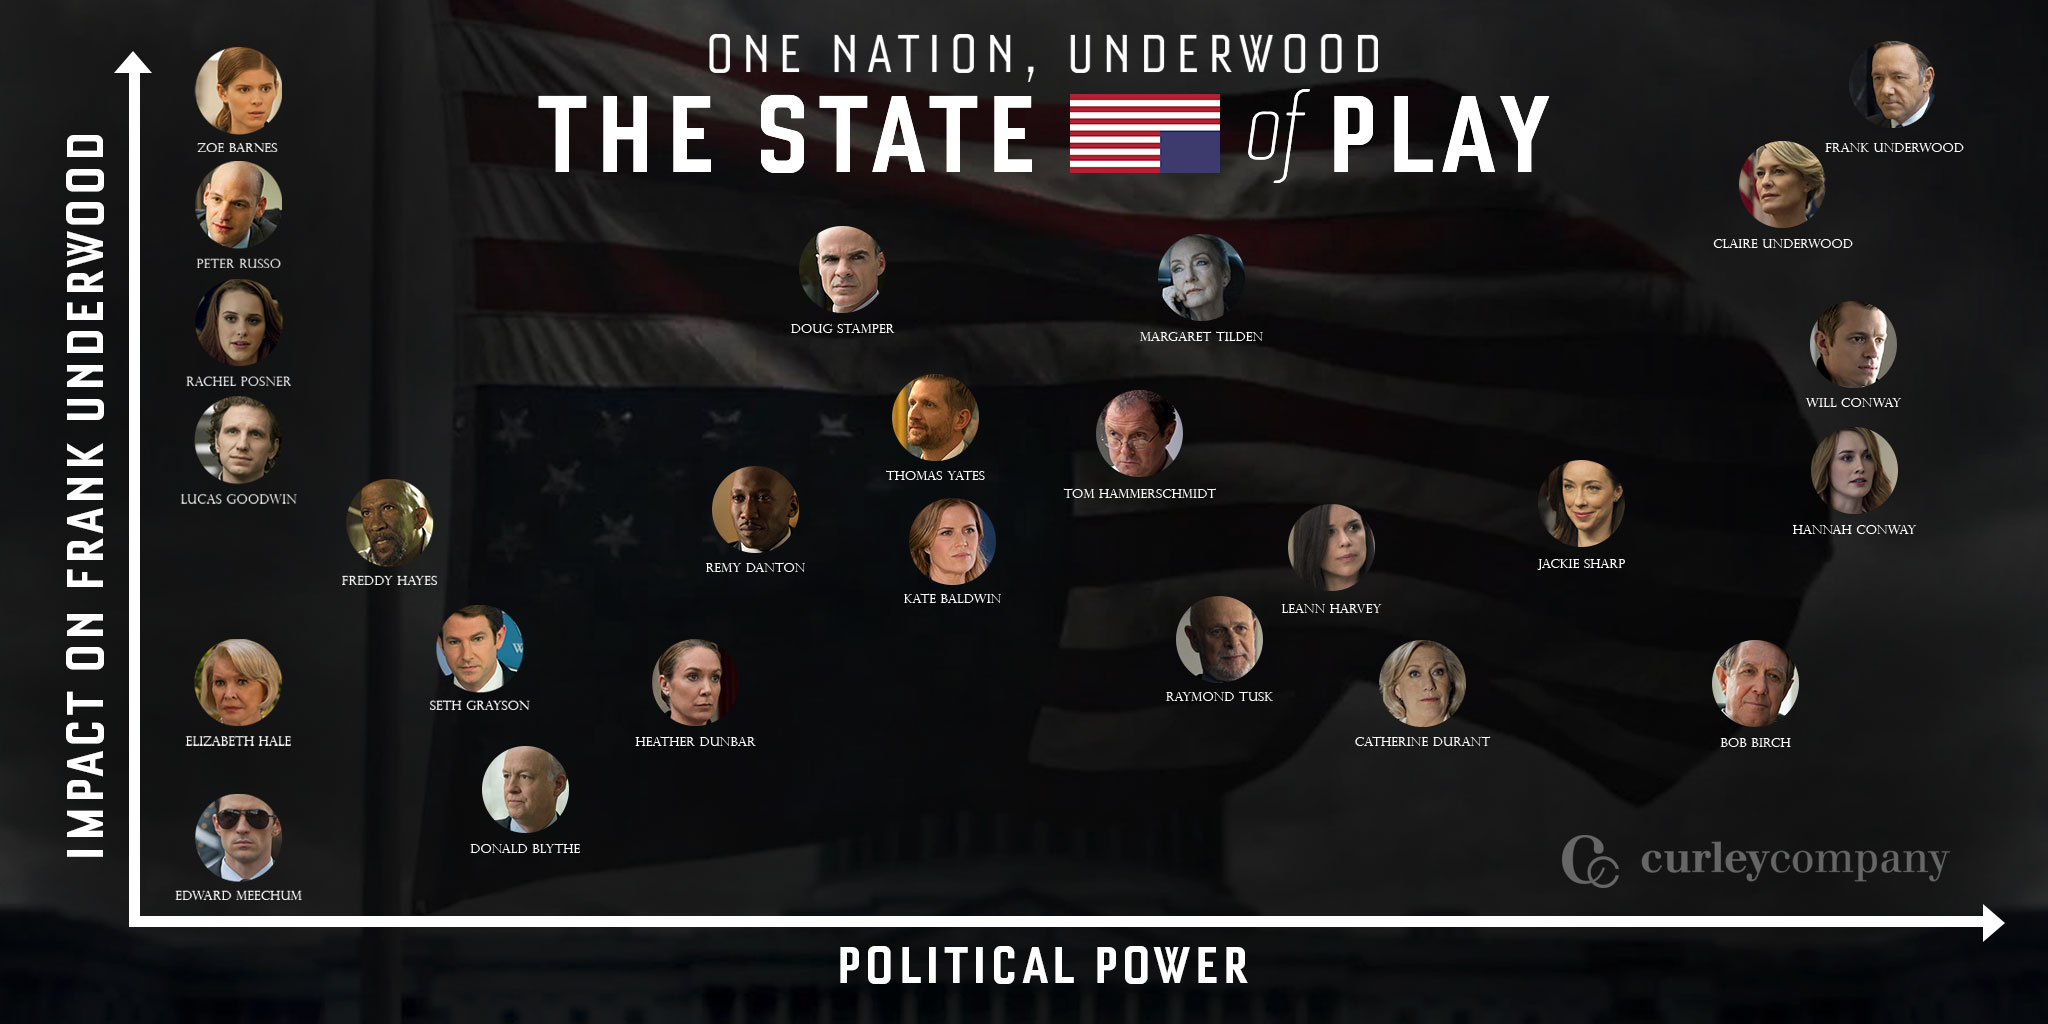 One Nation, Underwood: The State of Play